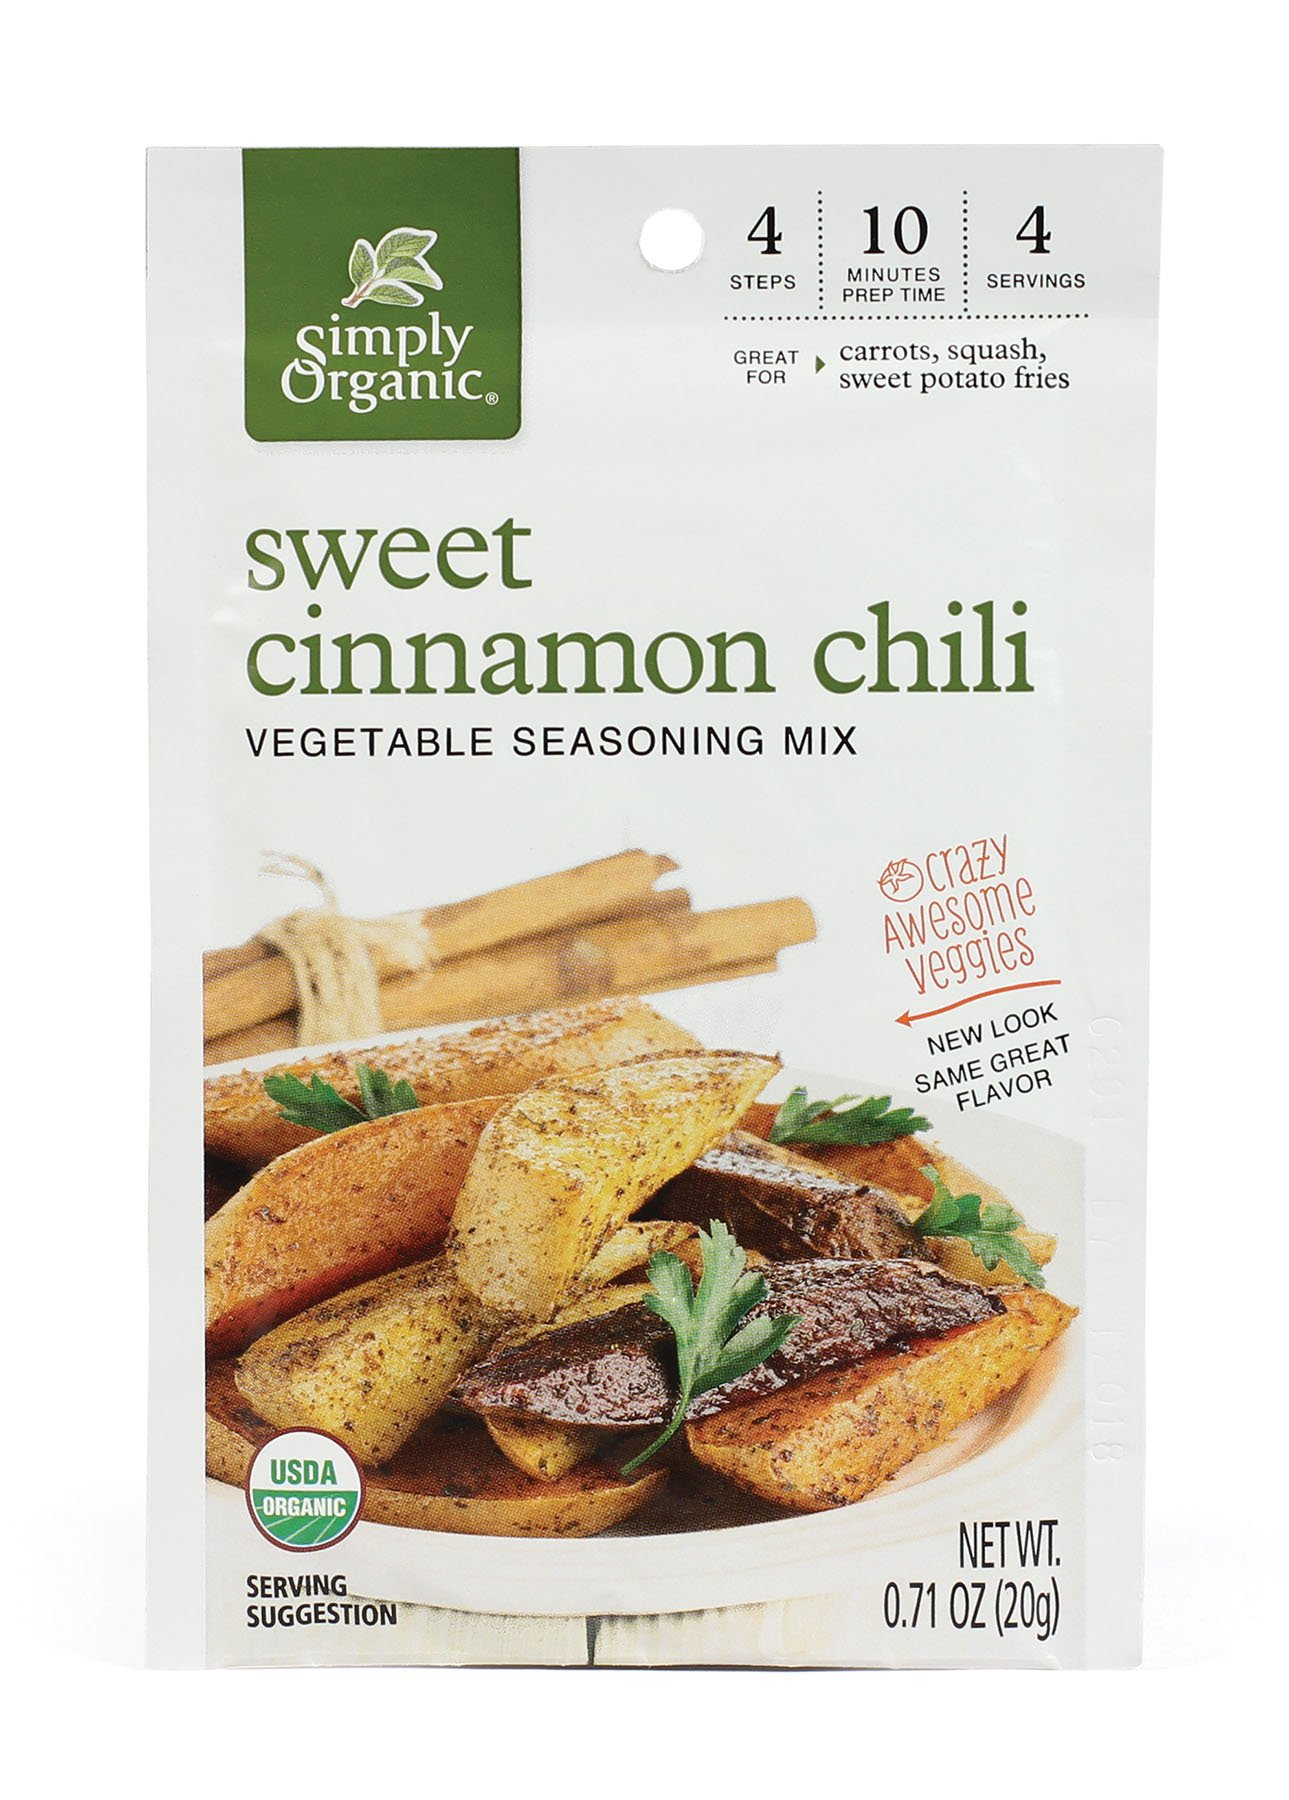 Simply Organic Crazy Awesome Veggies Chili Seasoning Mix, Sweet Cinnamon, 0.71 Ounce (Pack of 12)